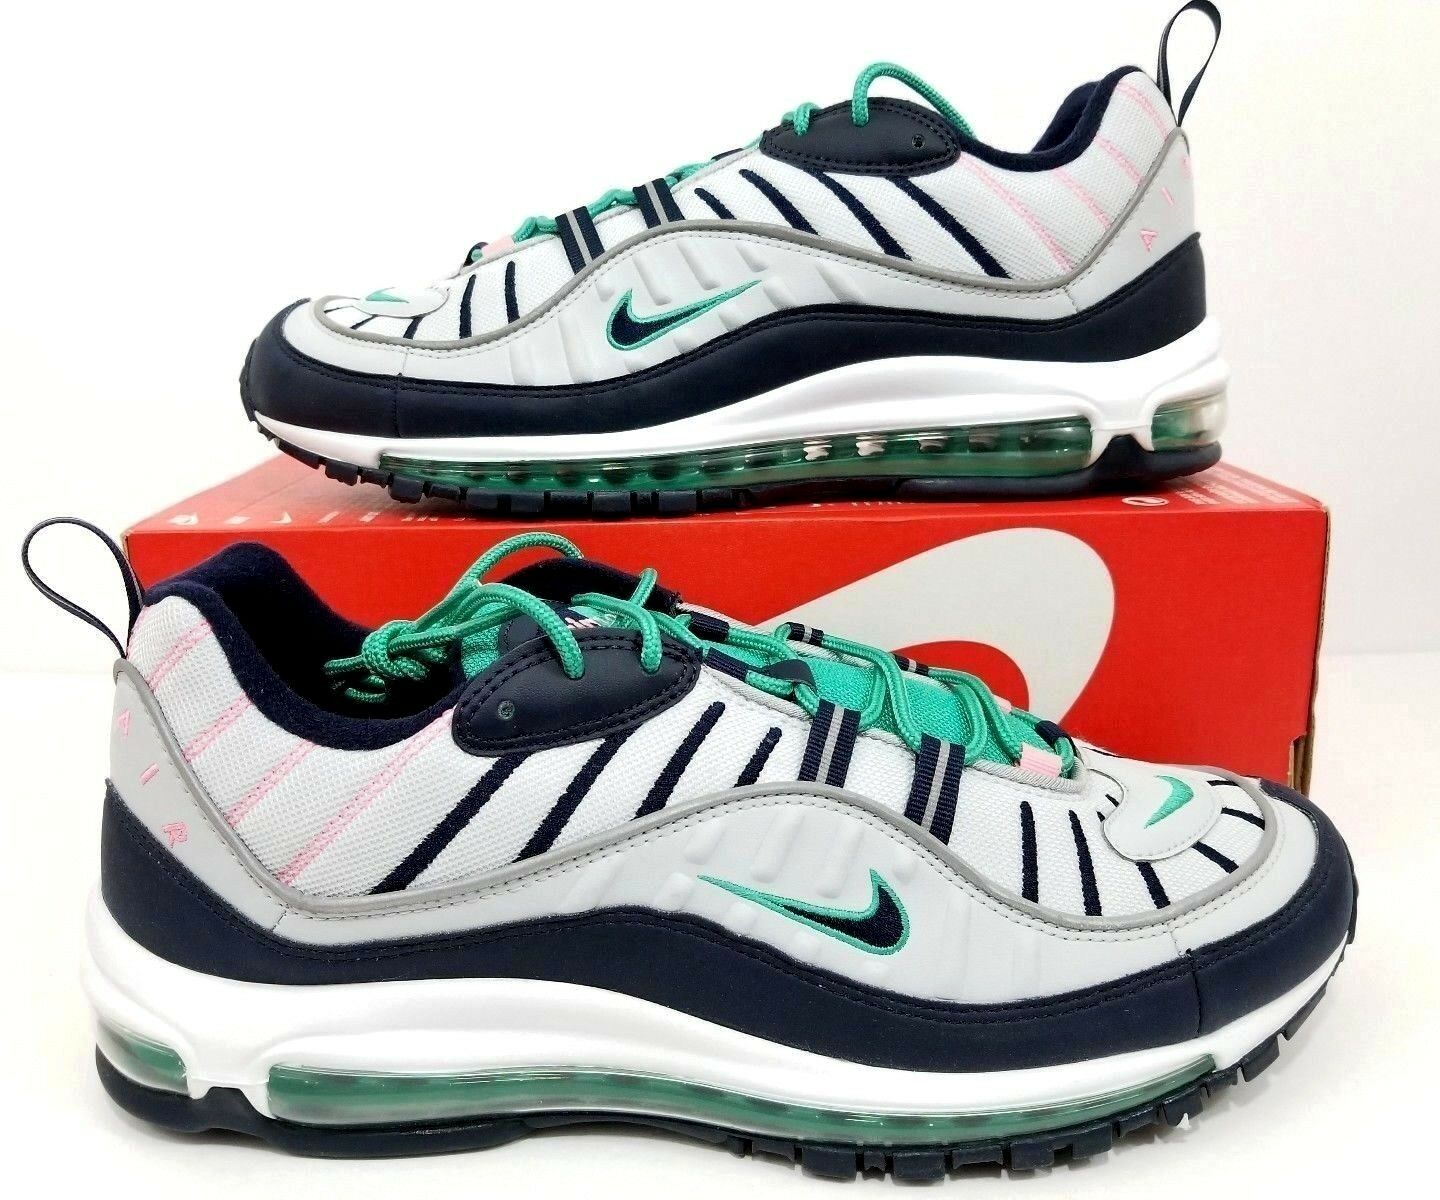 Nike Air Max 98 South Beach Tidal Wave Pure Platinum Obsidian 640744-005 Sz 12.5